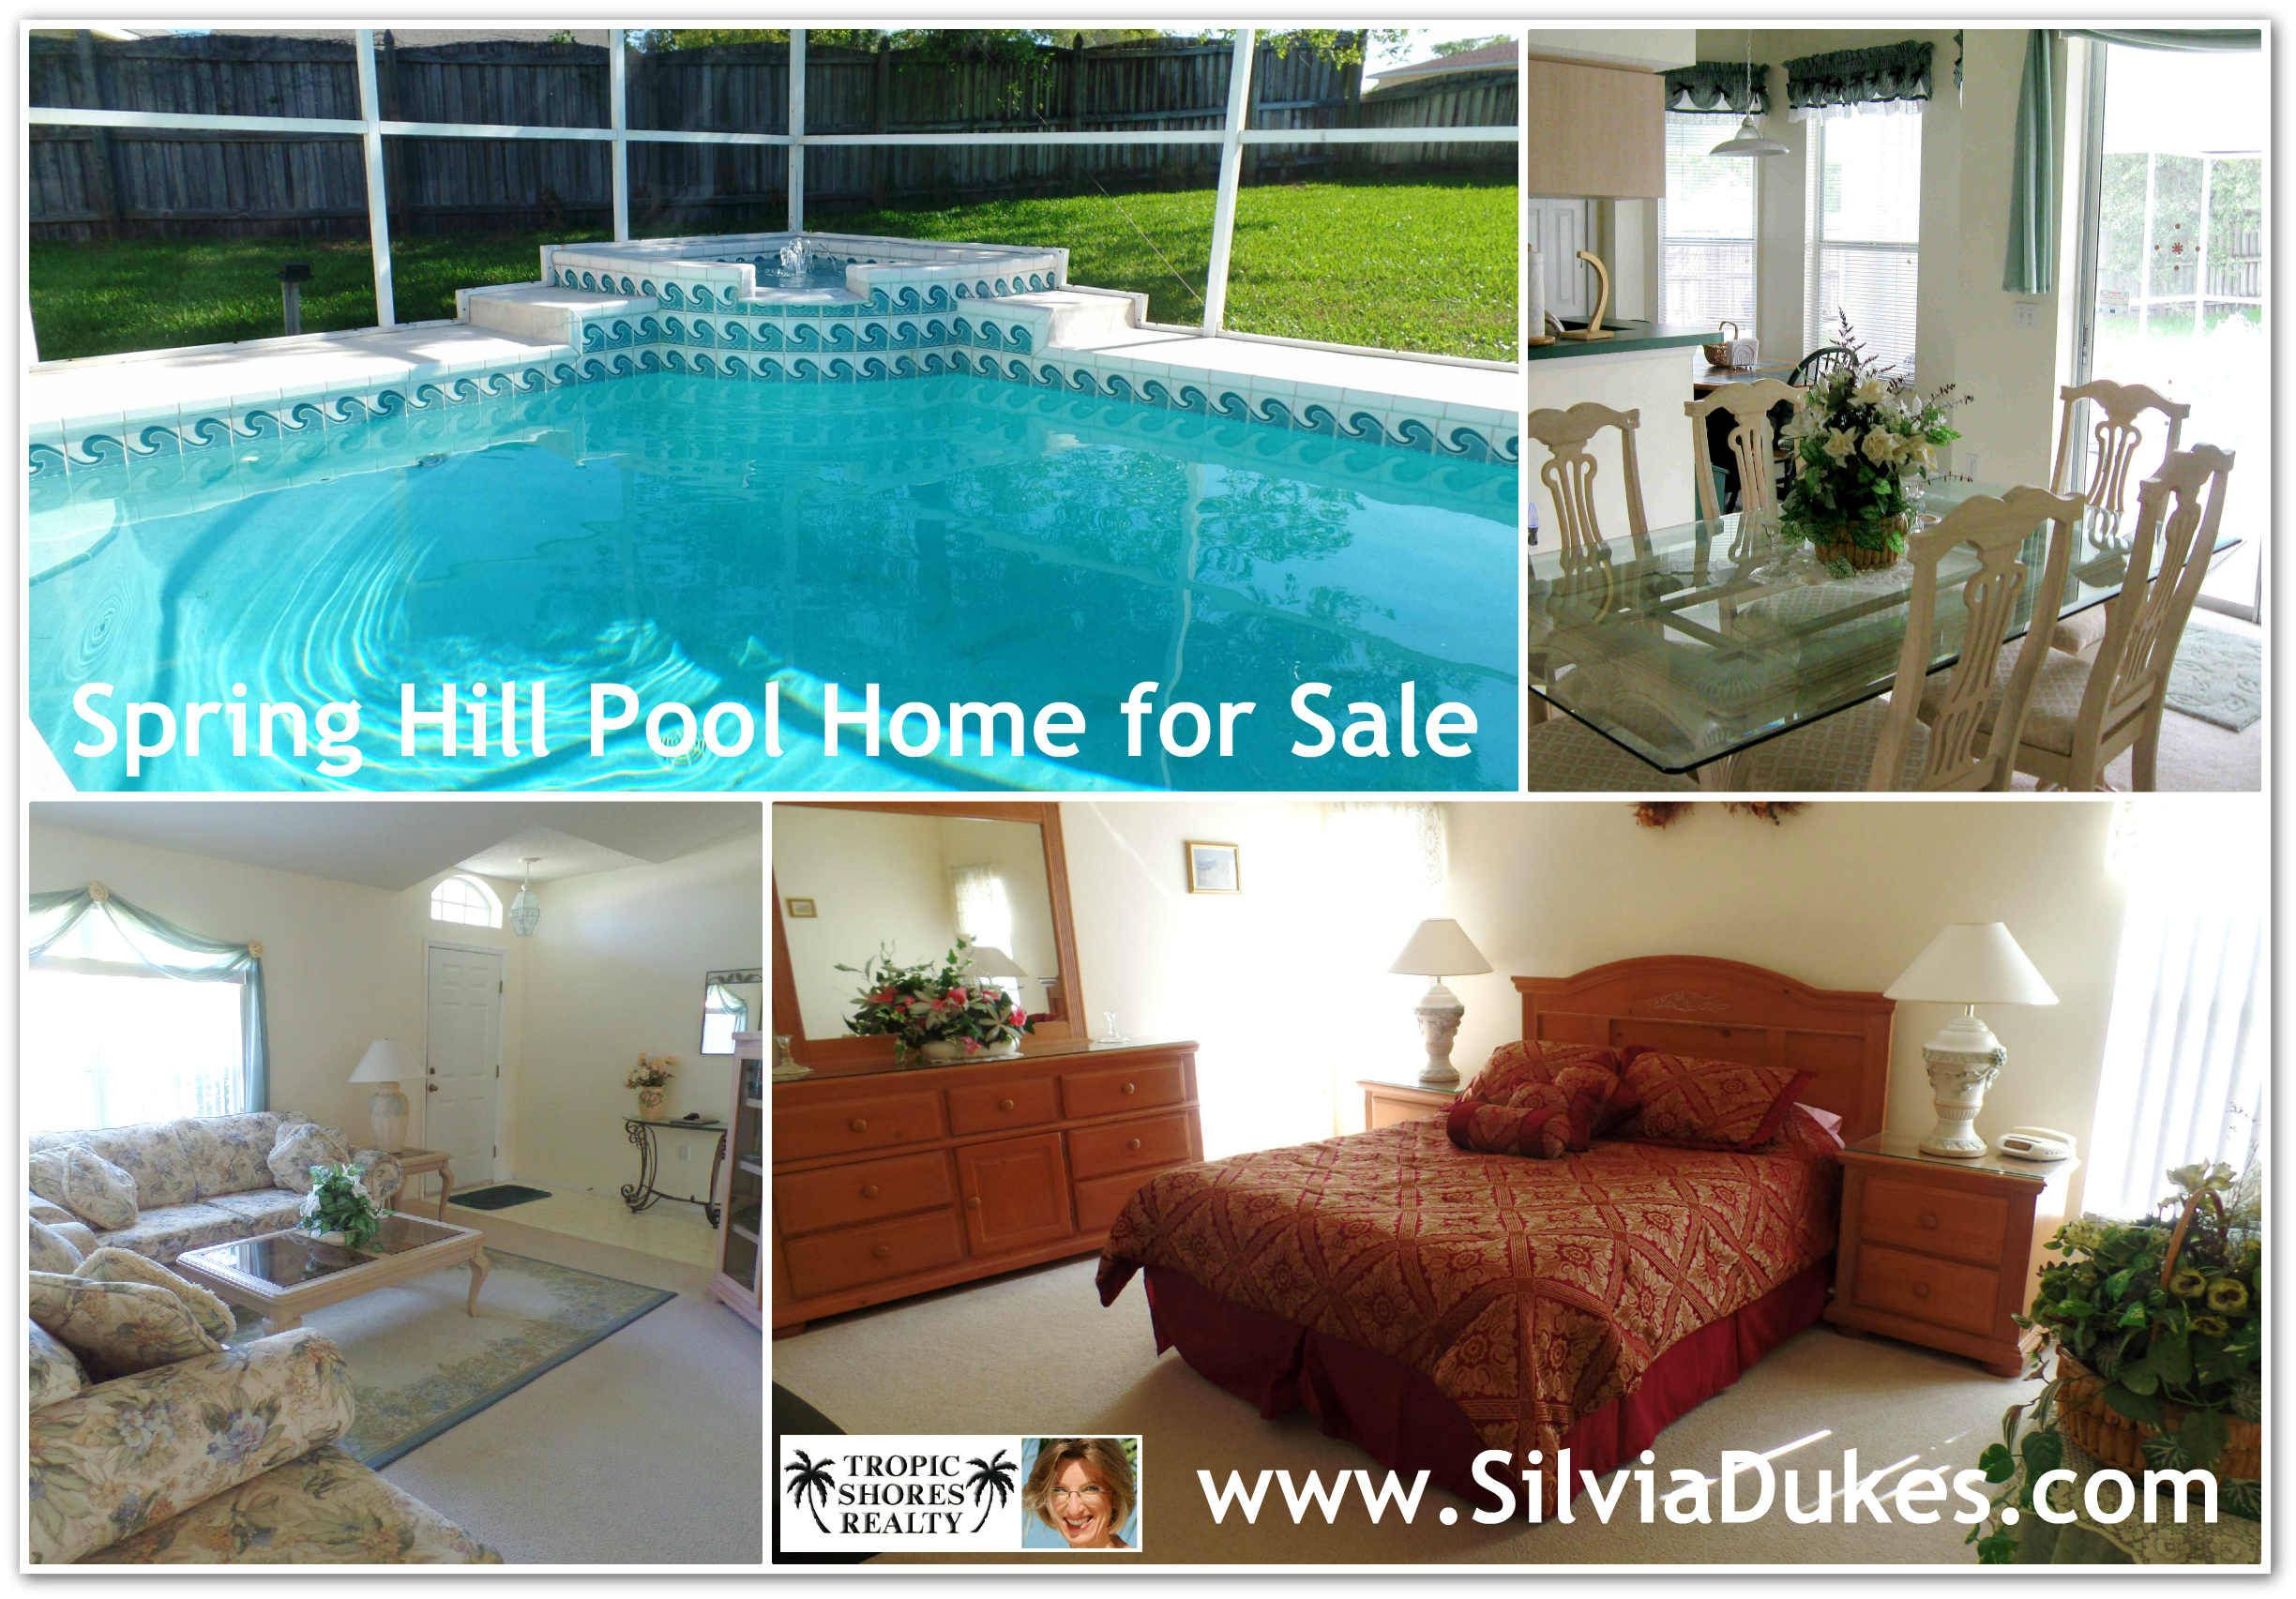 Spring Hill home for sale with solar heated pool by Silvia Dukes